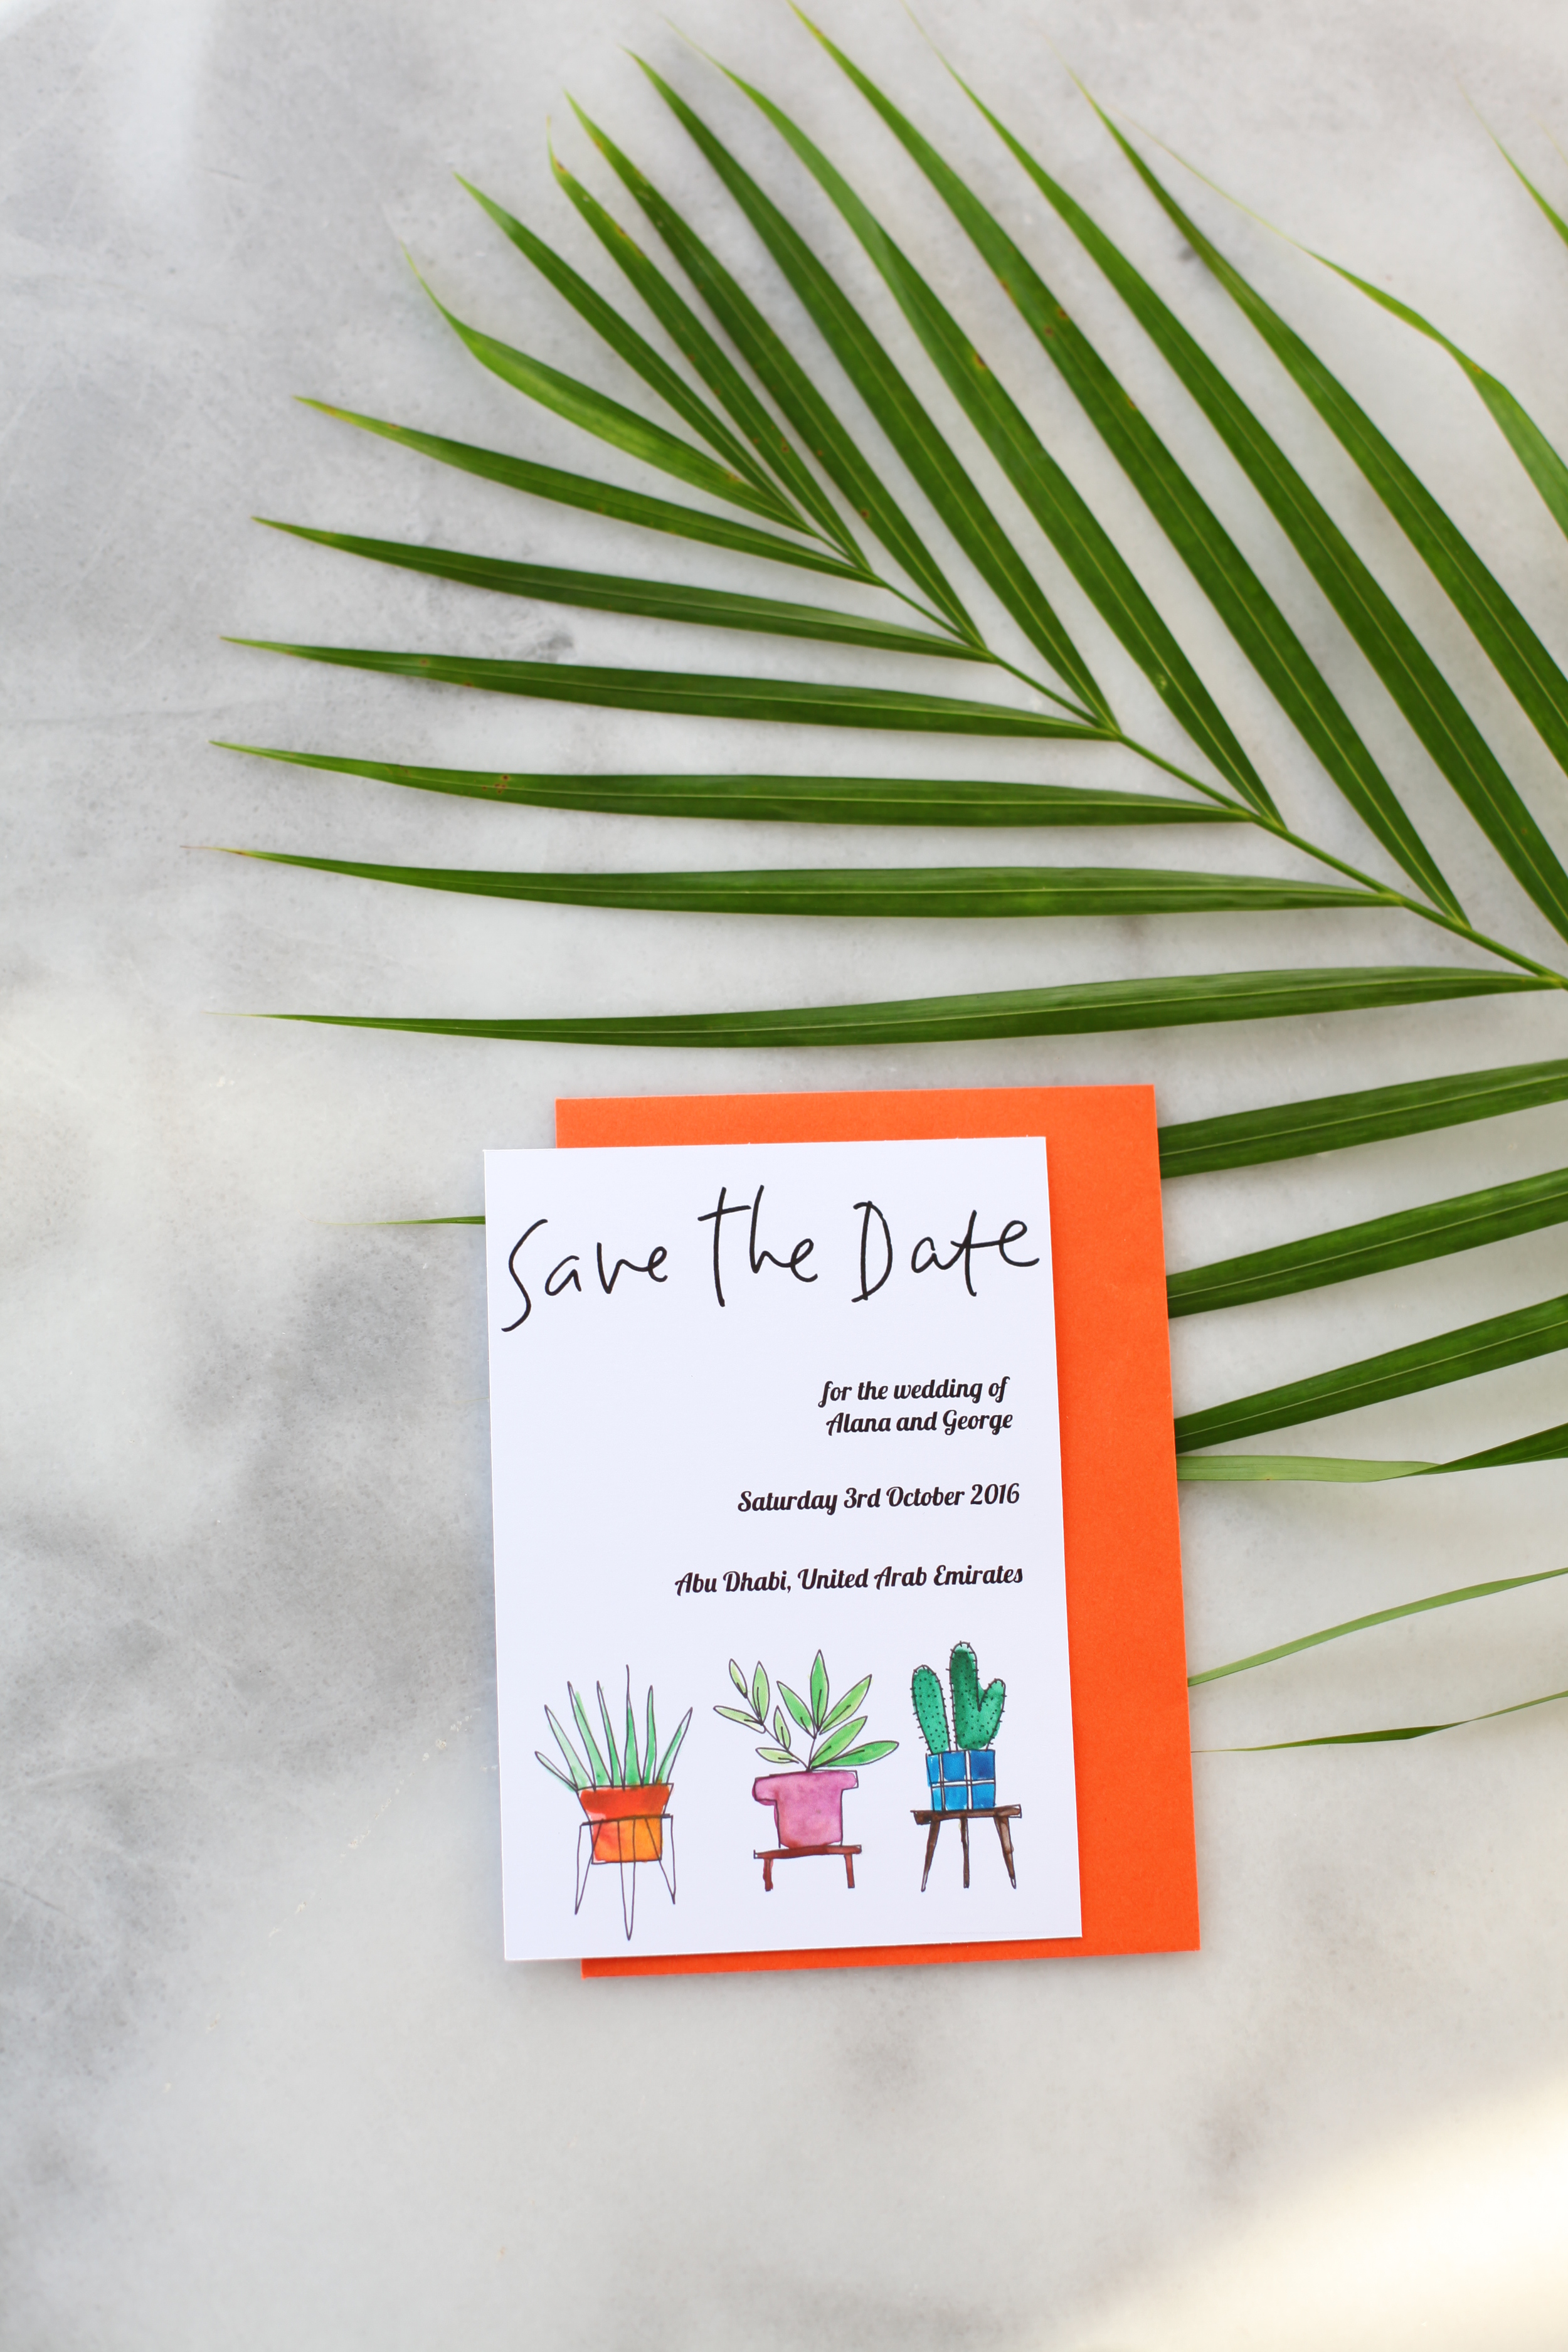 Save The Date - 3 Potted Plants